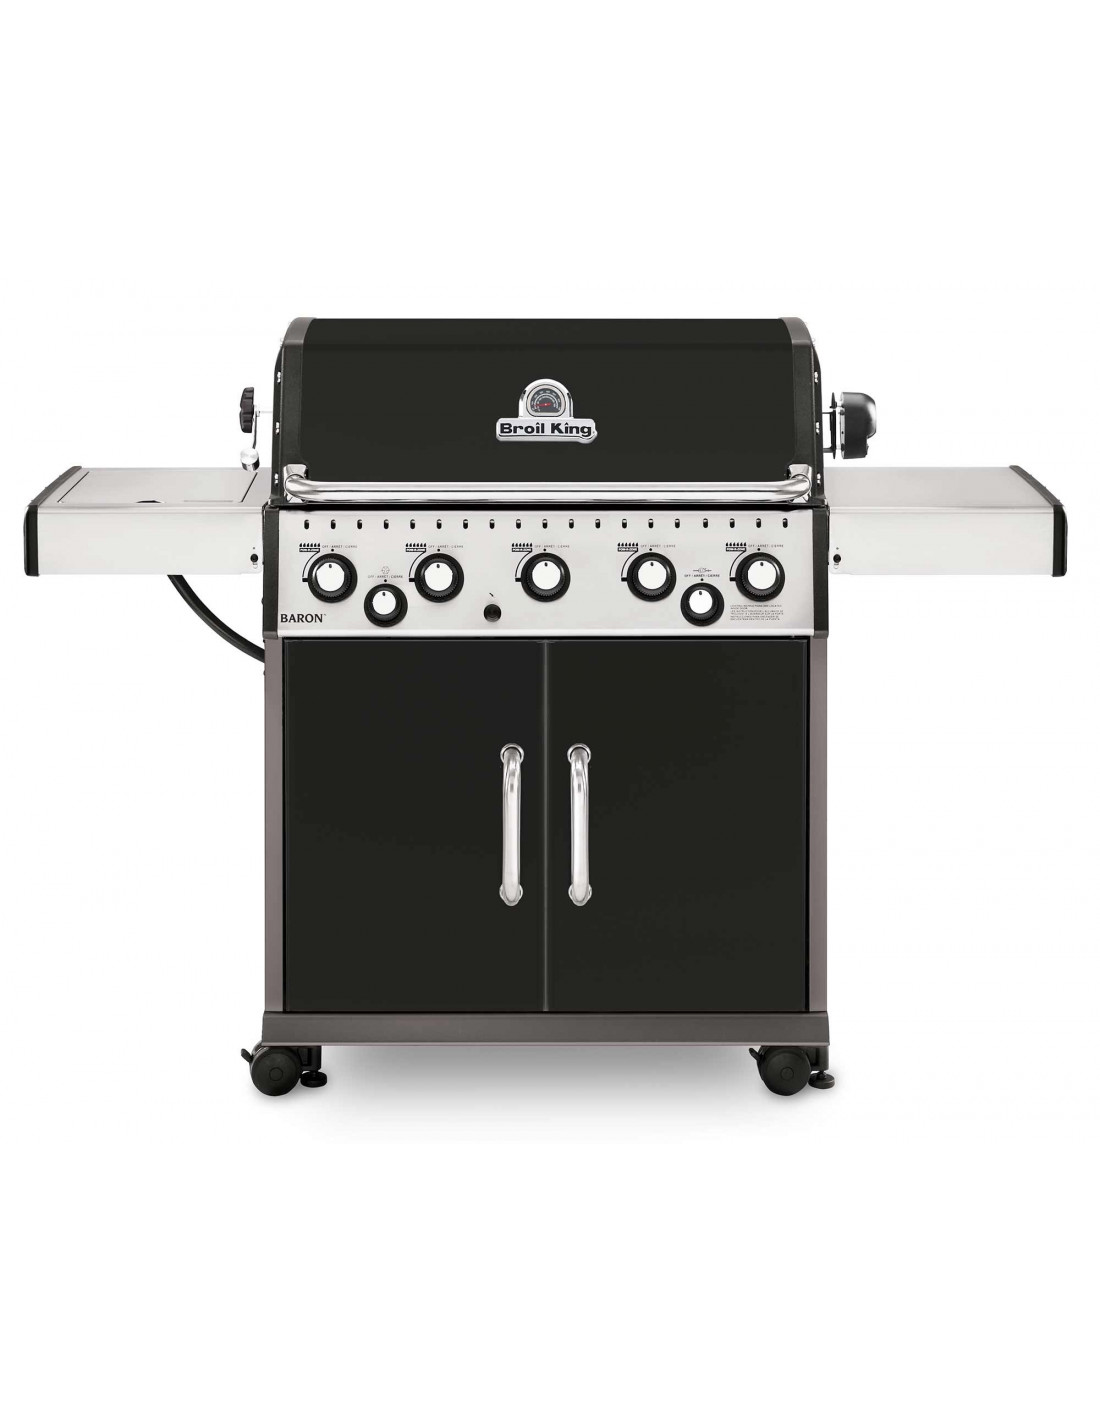 Fabulous Barbecue Baron Gaz Broil King With Foyer Barbecue Encastrable